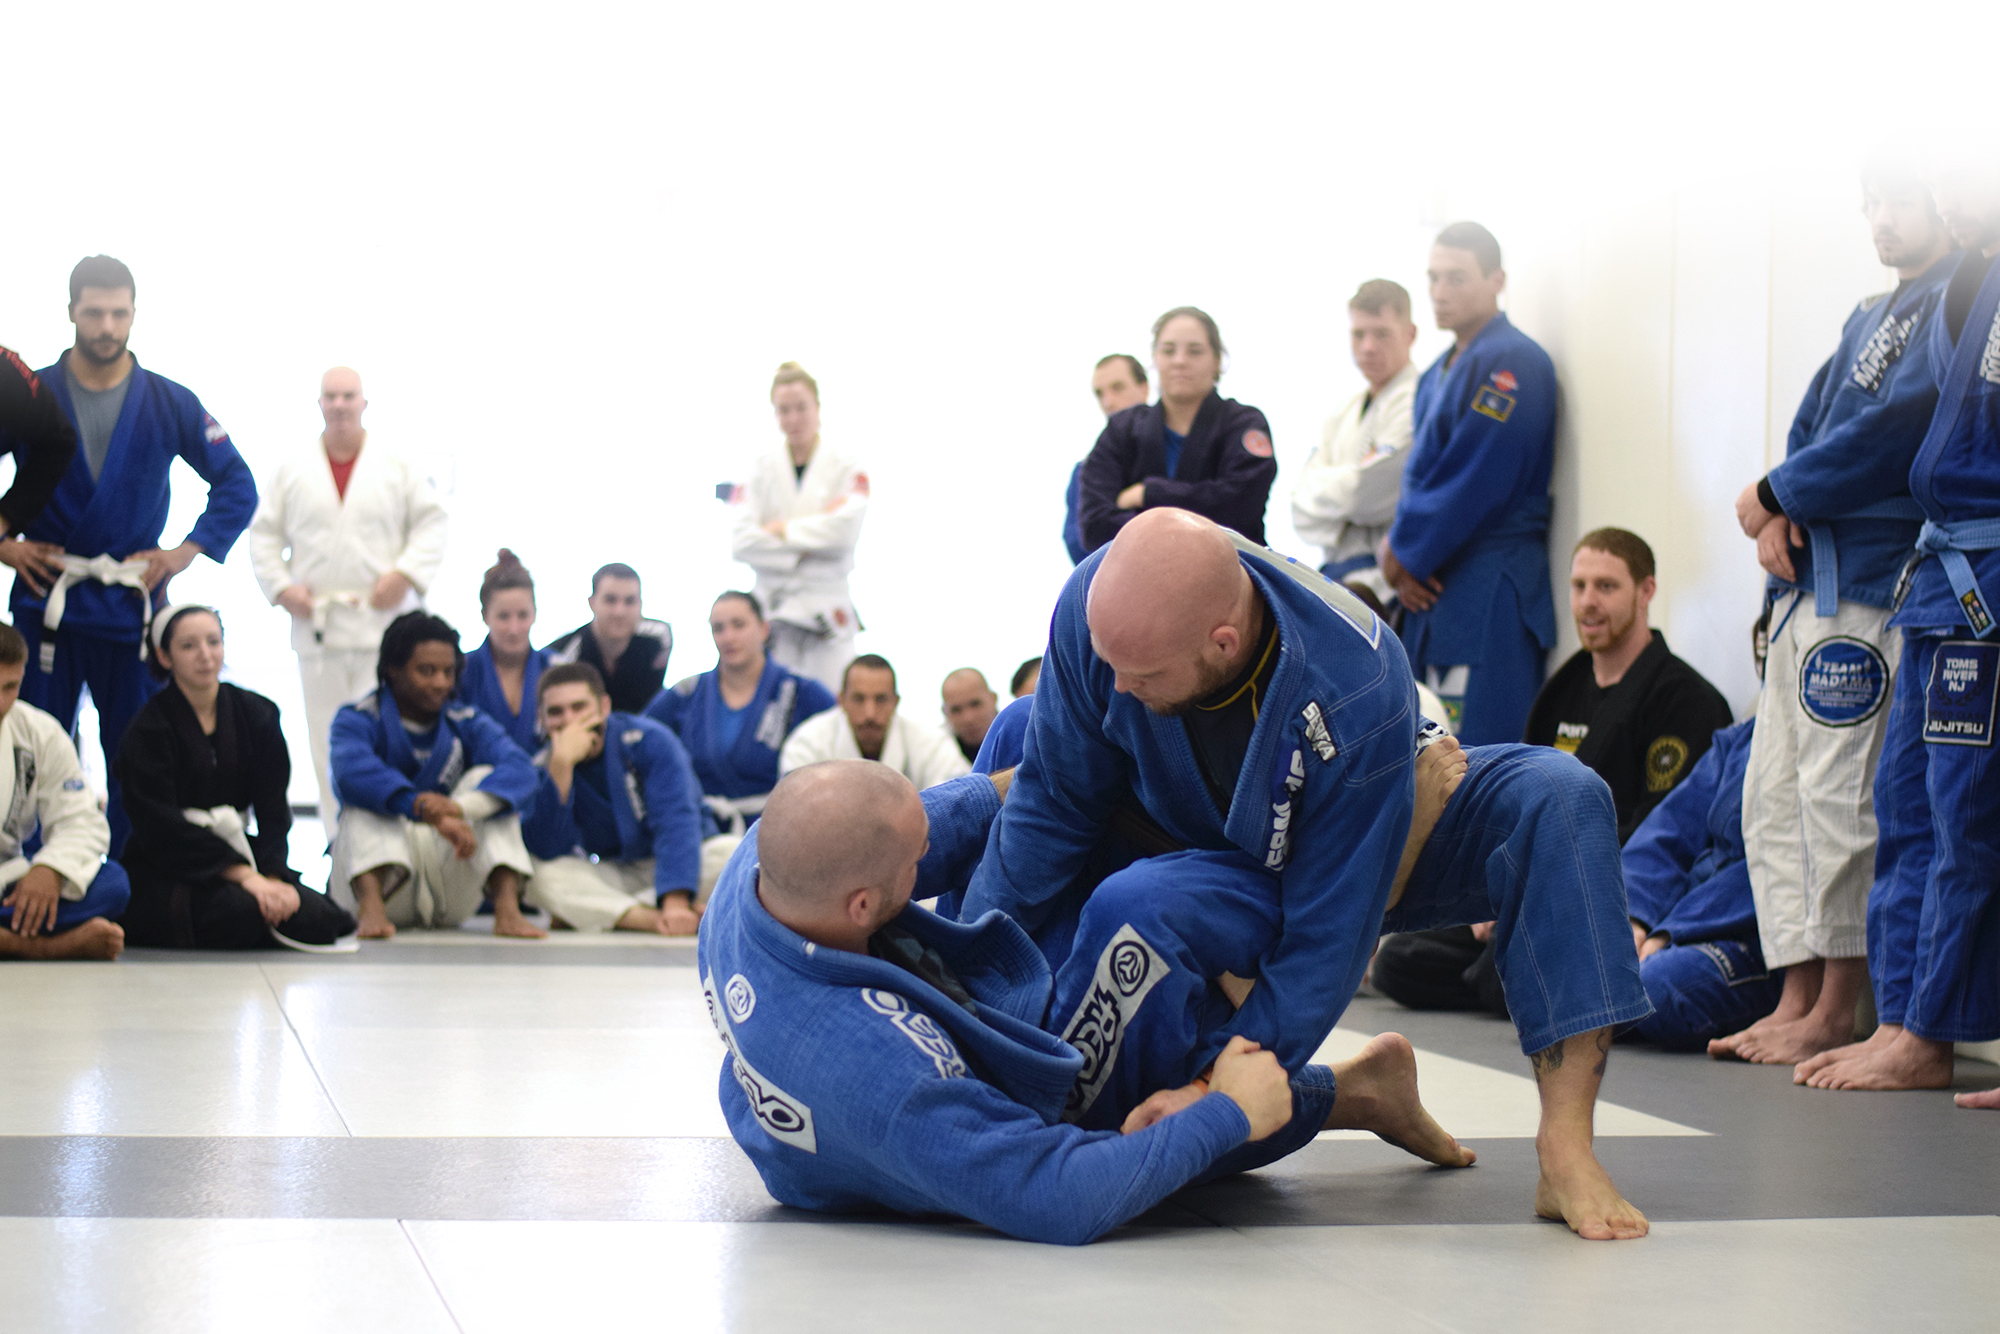 Beginner & Advanced Classes Available   Jiu-Jitsu    FREE TRIAL CLASS